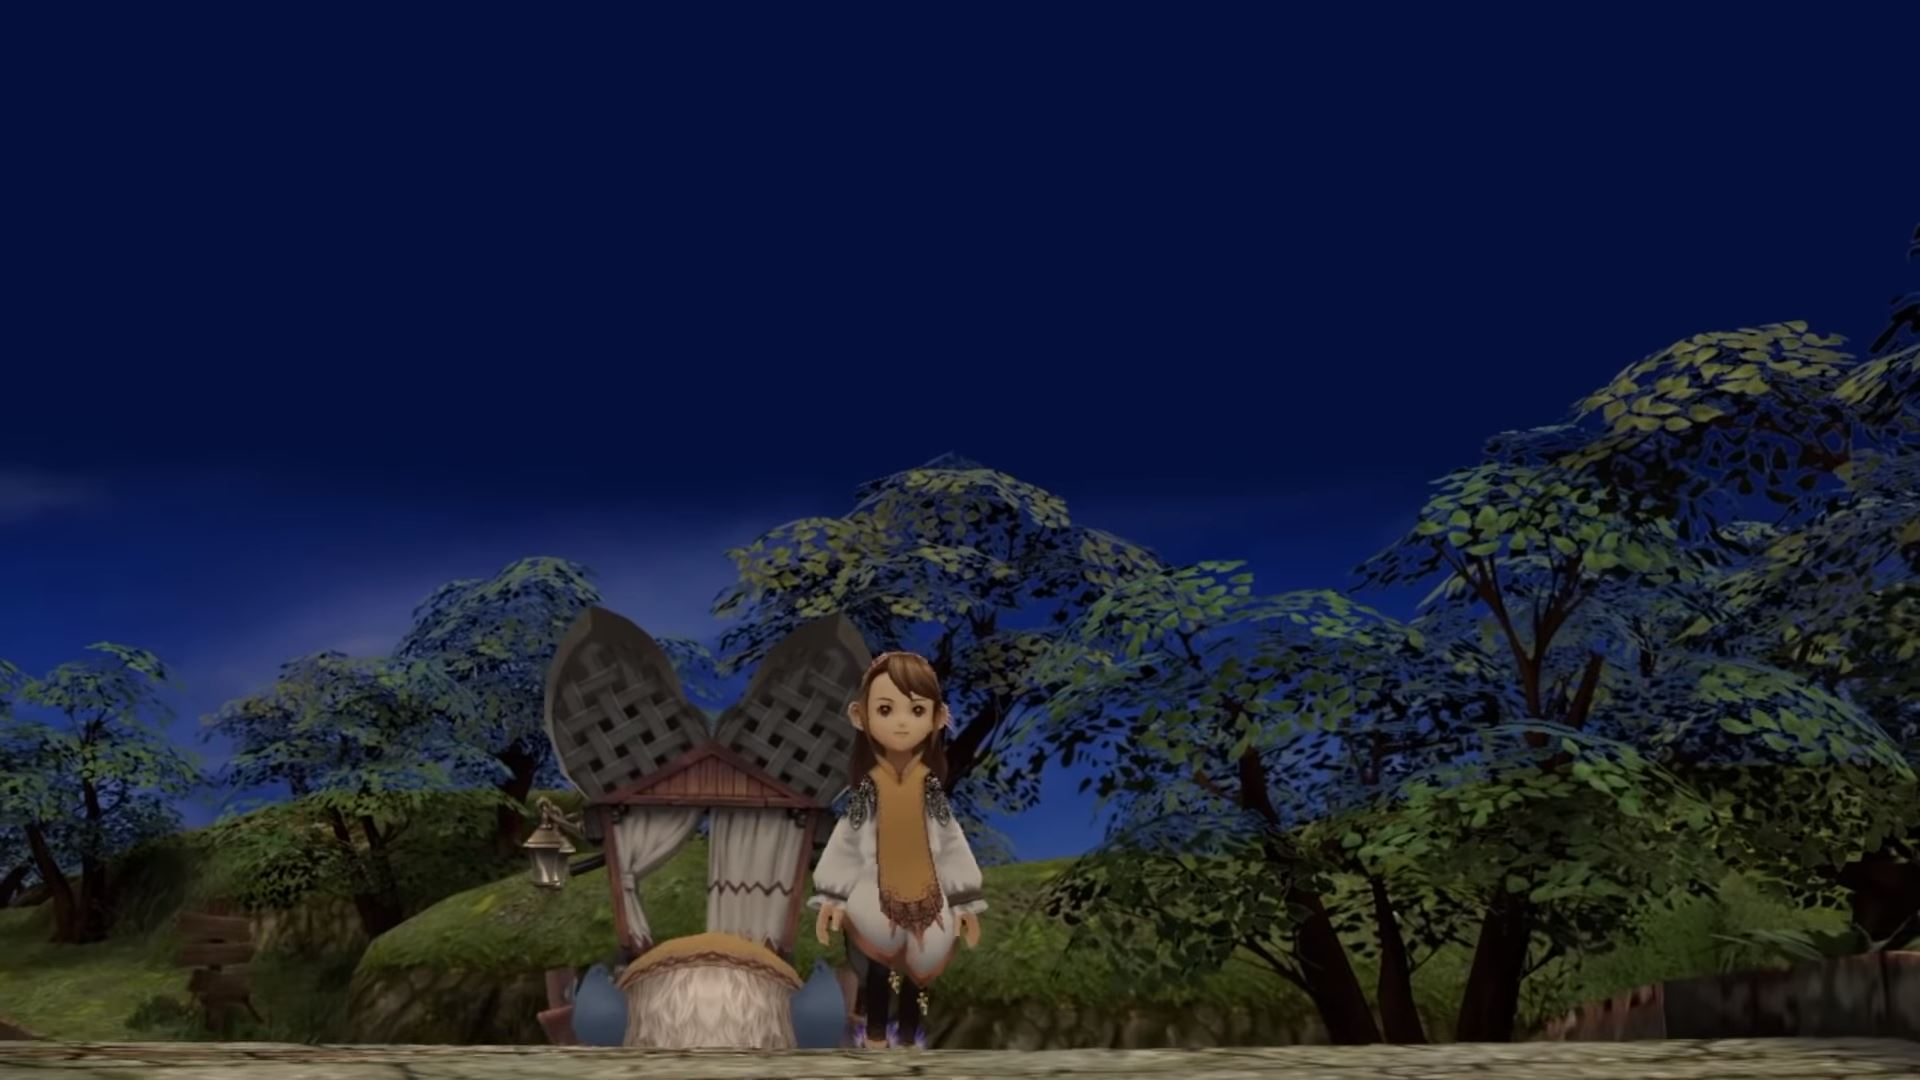 Final Fantasy Crystal Chronicles Remaster Trailer And Release